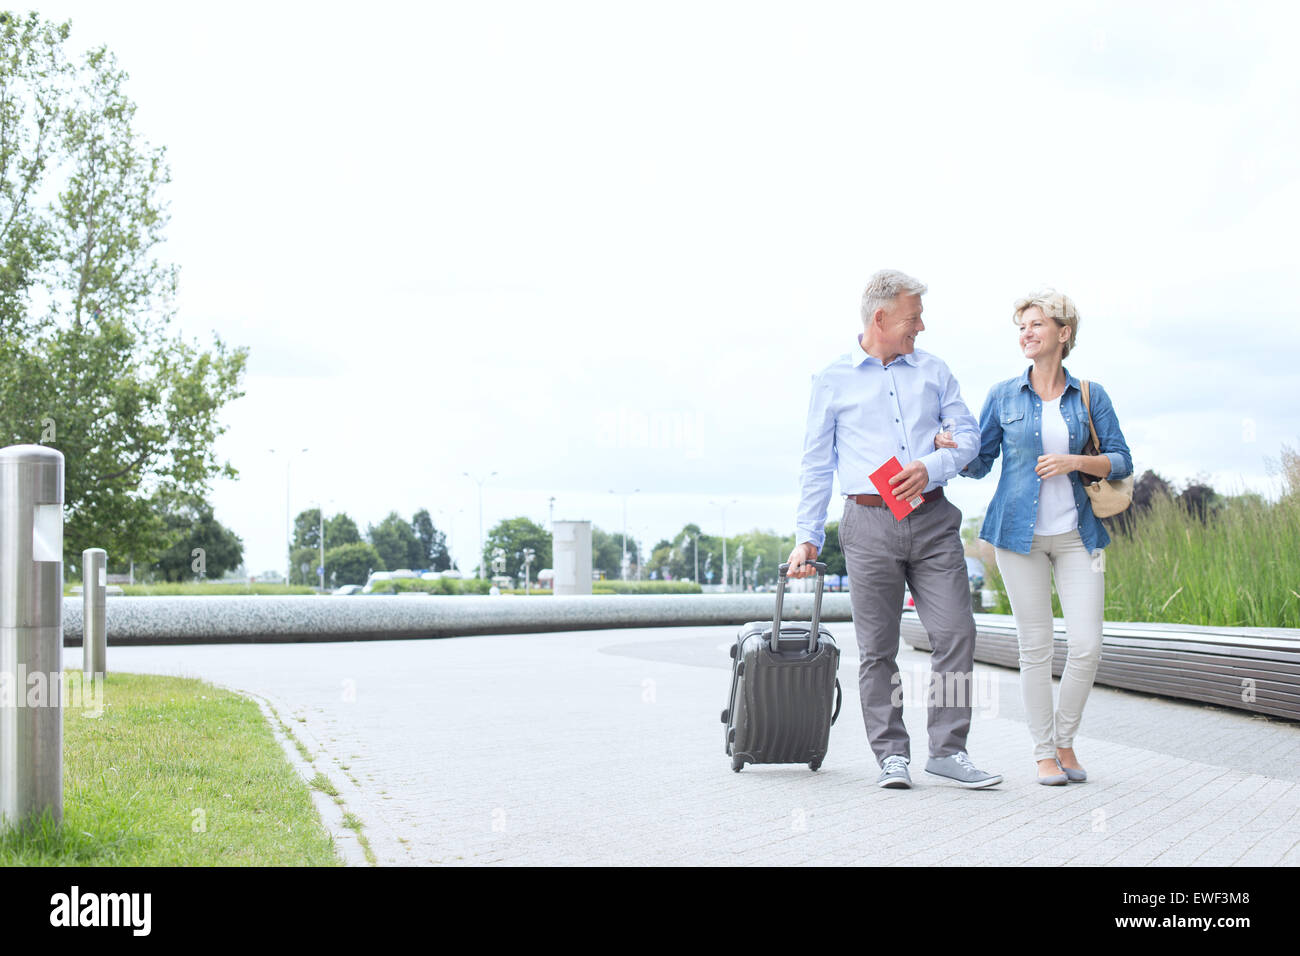 Middle-aged couple with luggage walking on footpath against clear sky - Stock Image